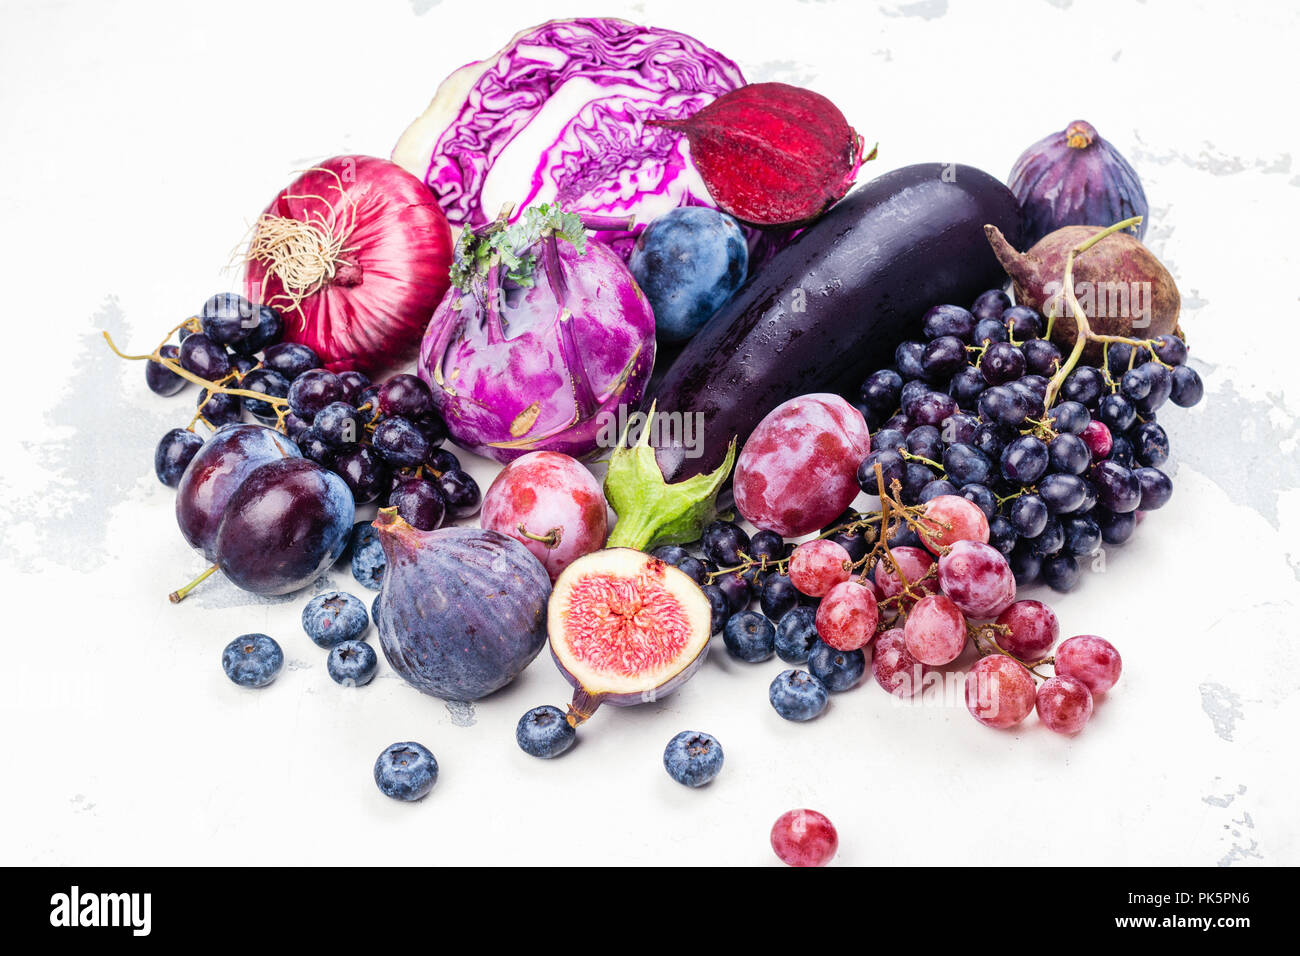 Selection of purple foods - Stock Image